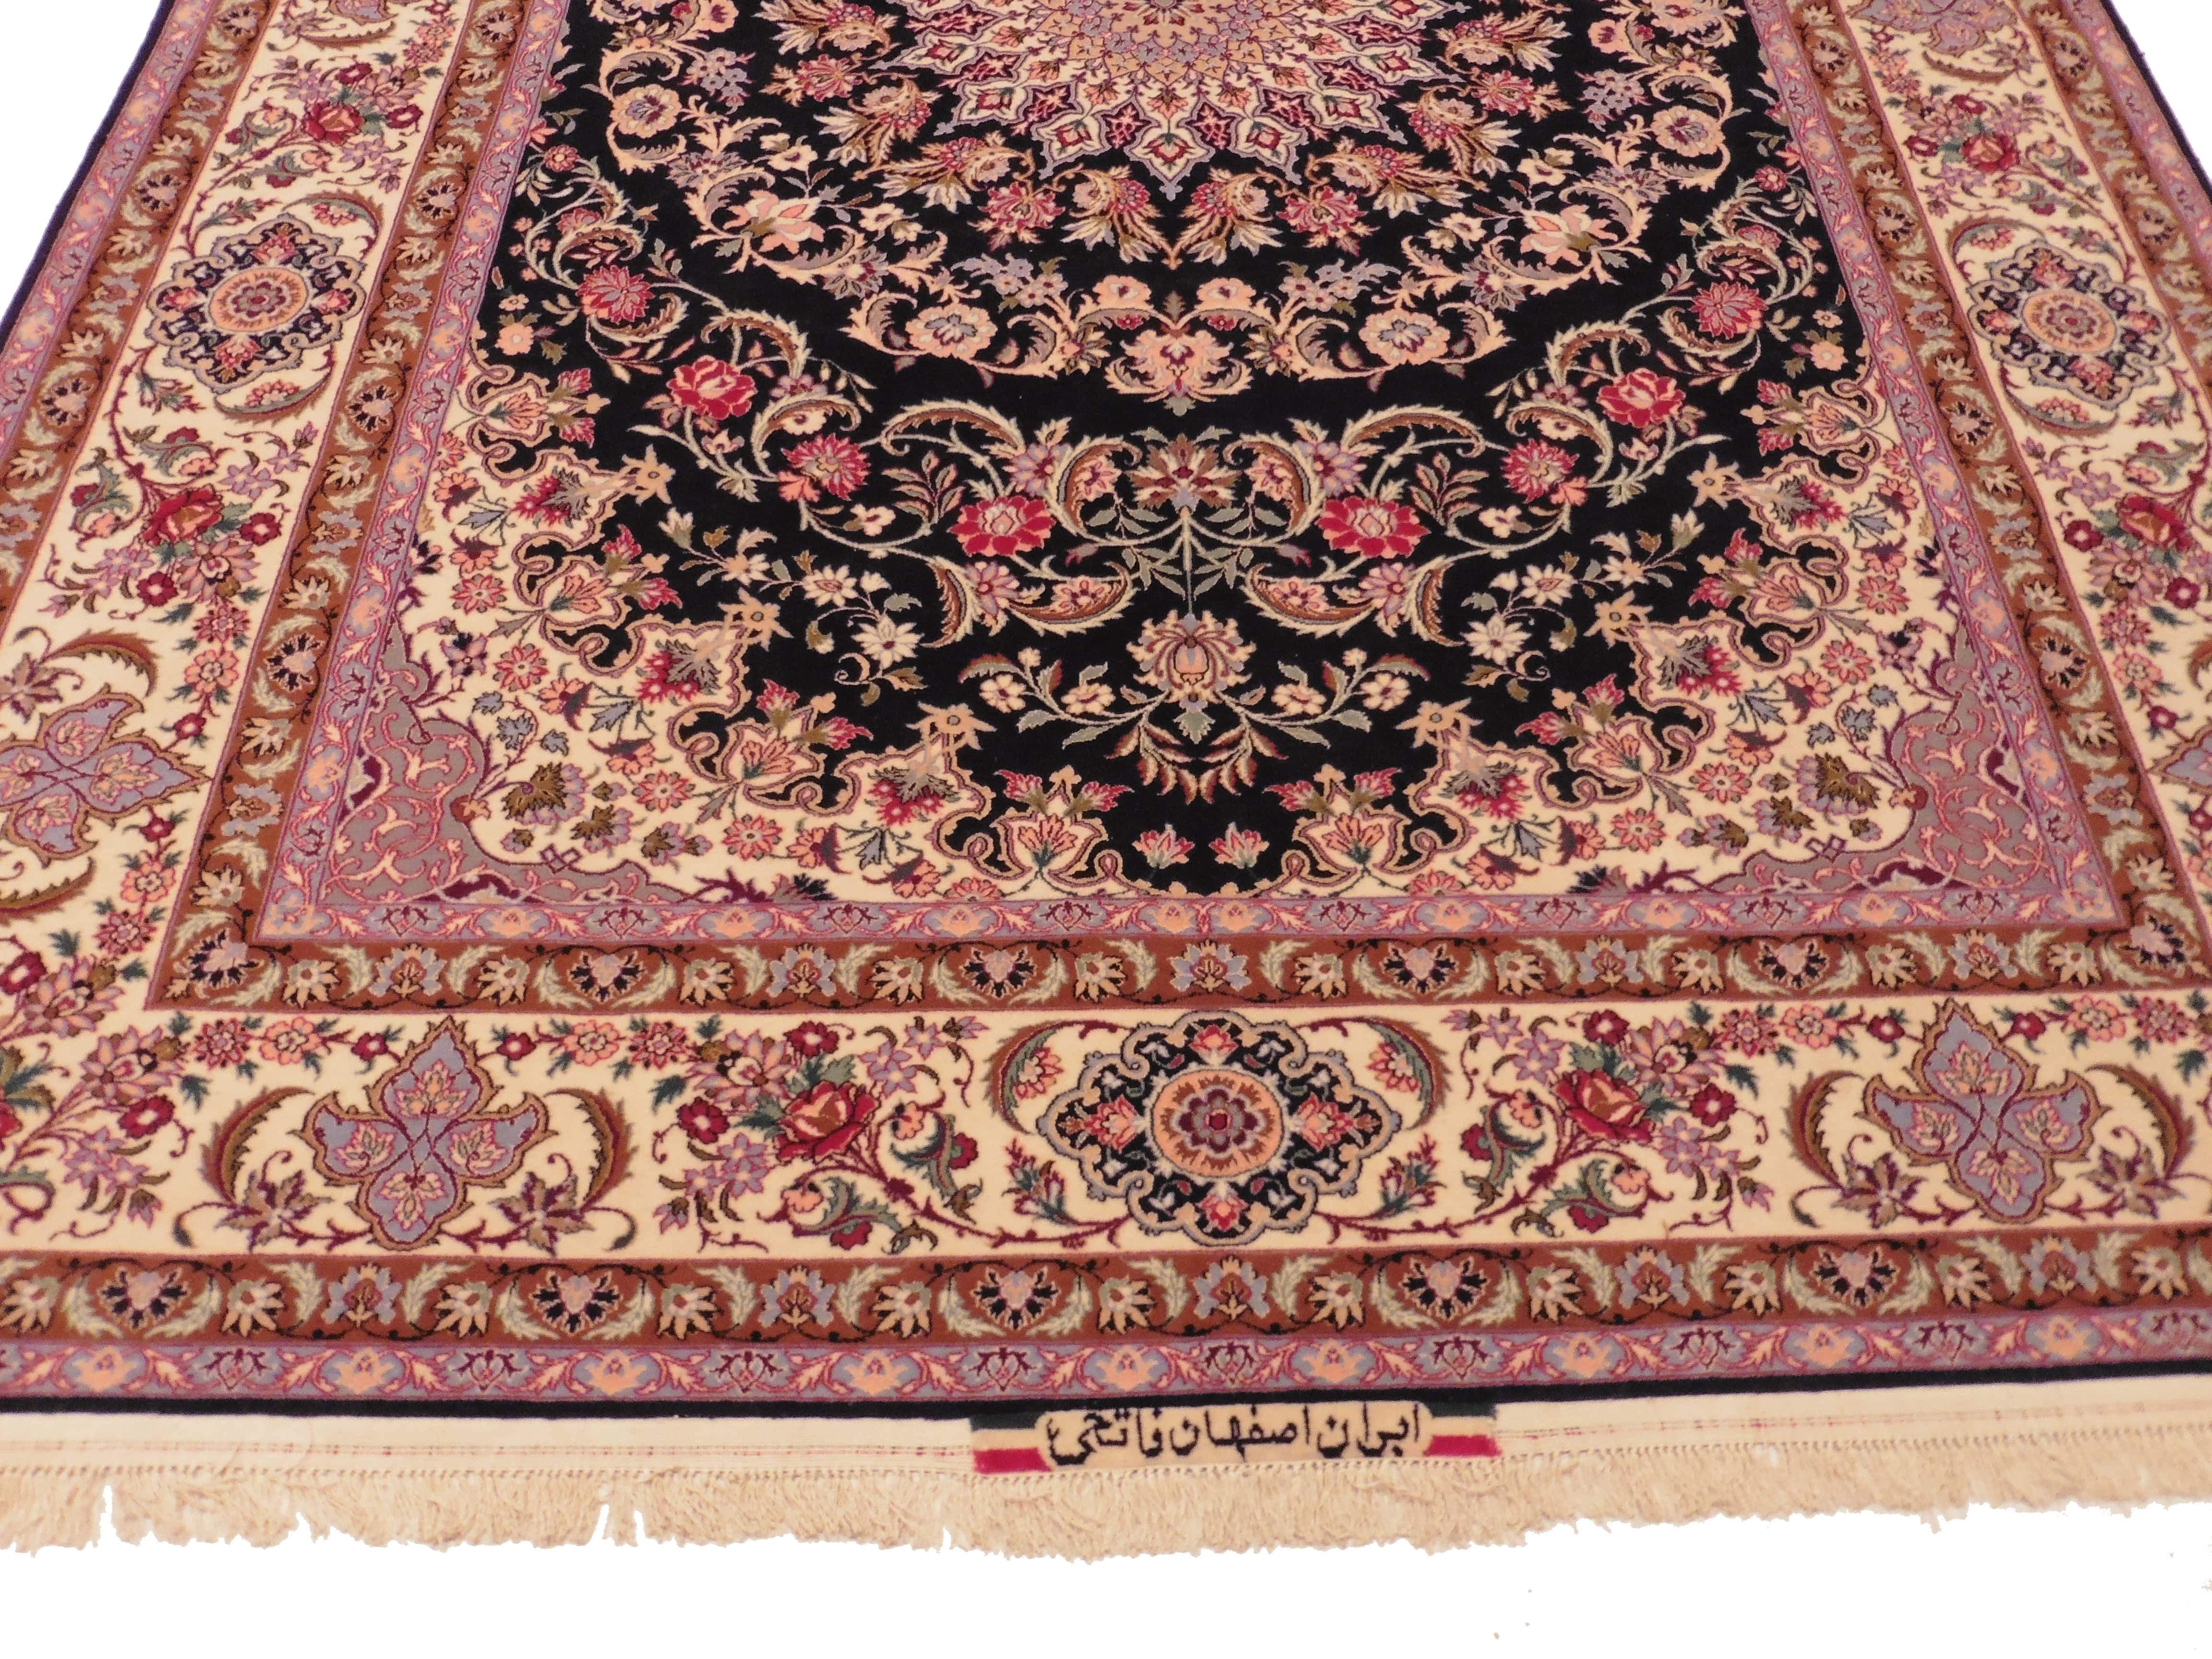 Signed Vintage Persian Isfahan 7 X 10 Area Rug 14143